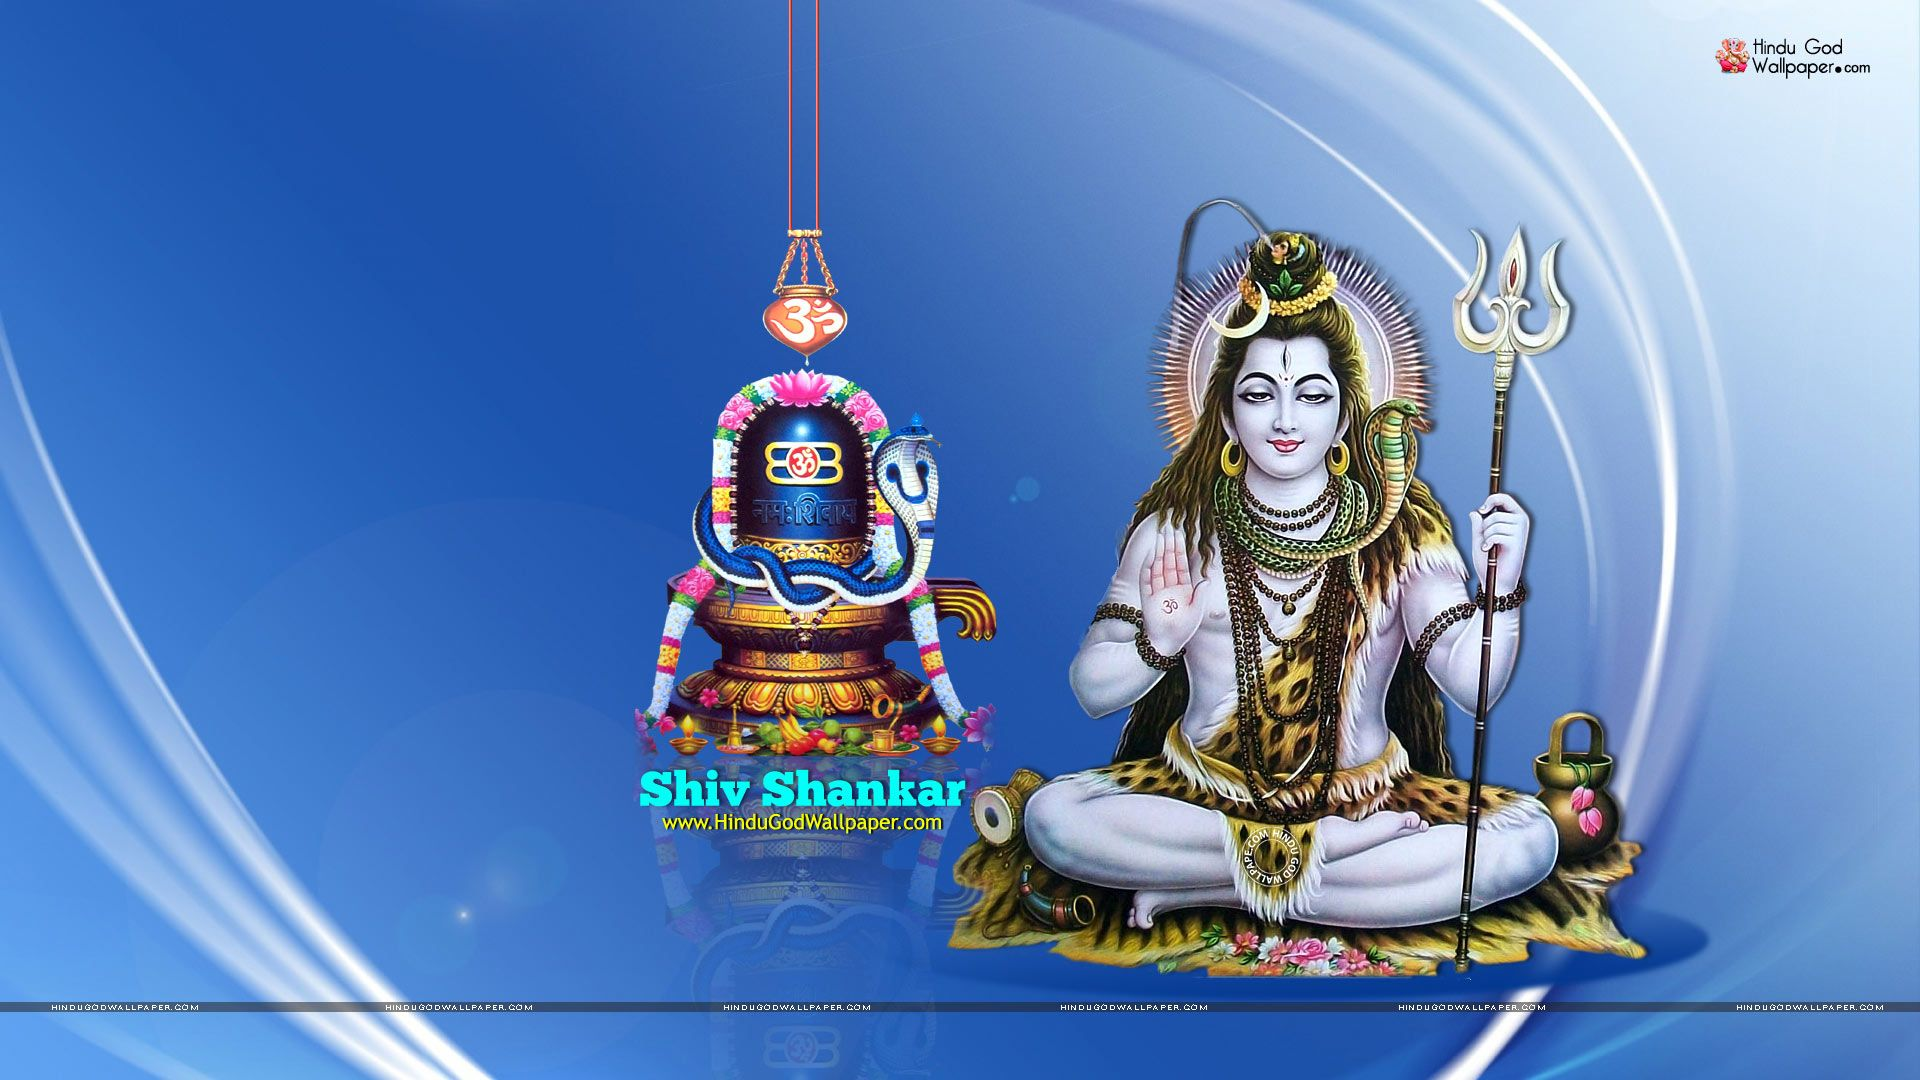 Shiv Shankar Wallpaper Hd Full Size 1080p Download Shiv Shiva